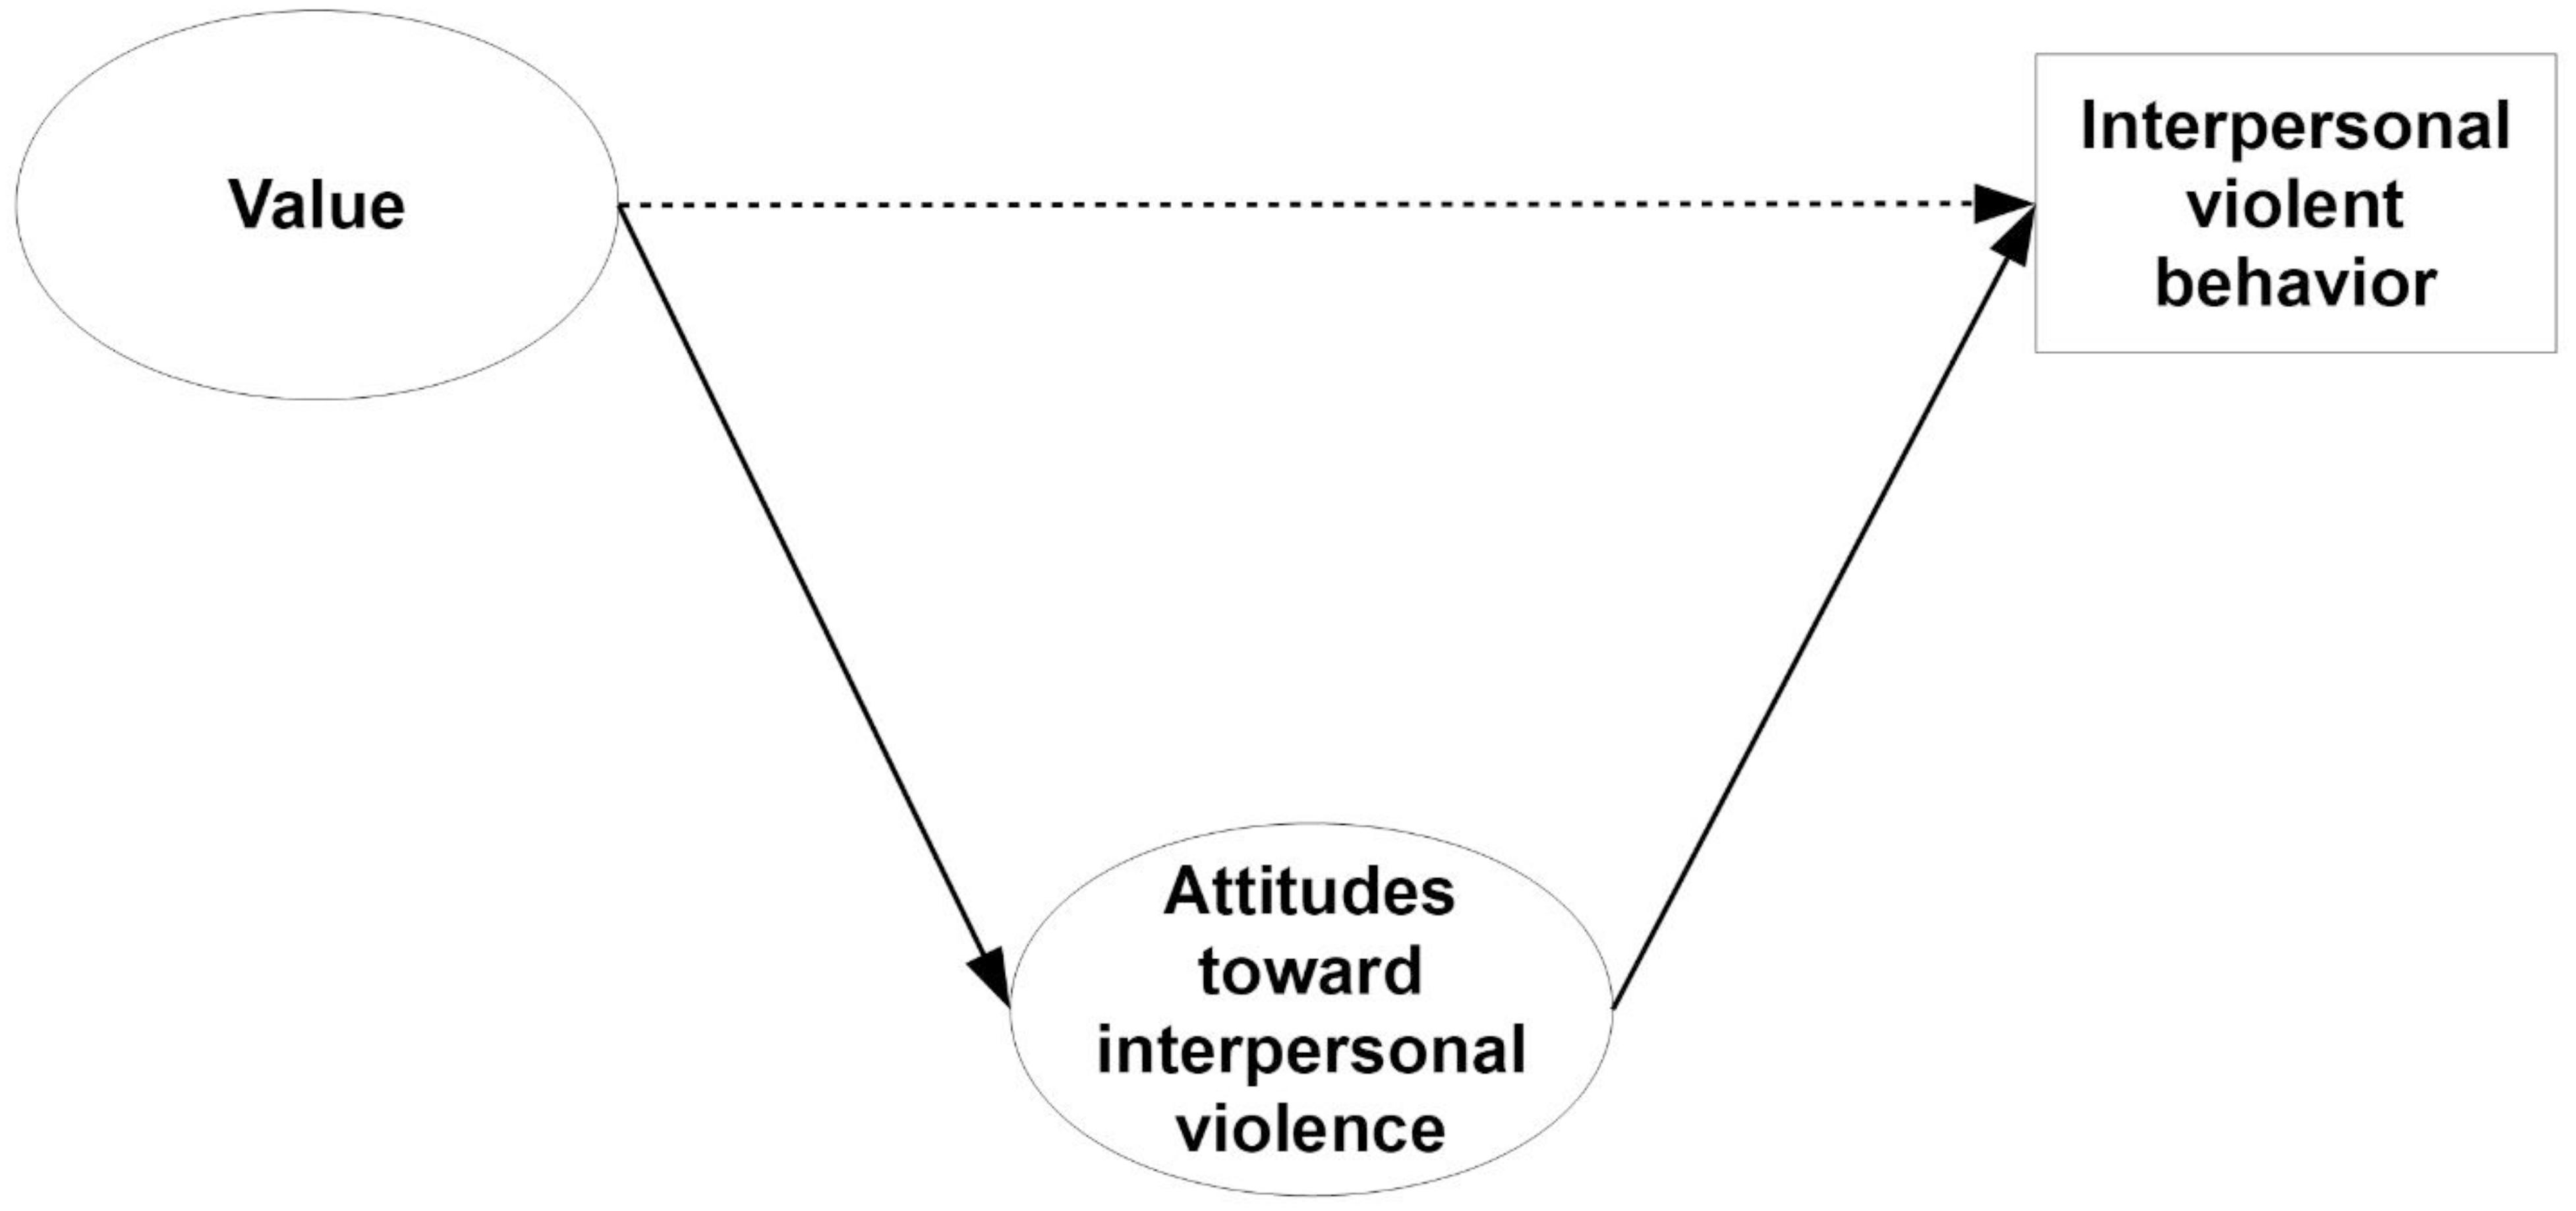 Frontiers | Values, Attitudes Toward Interpersonal Violence, and